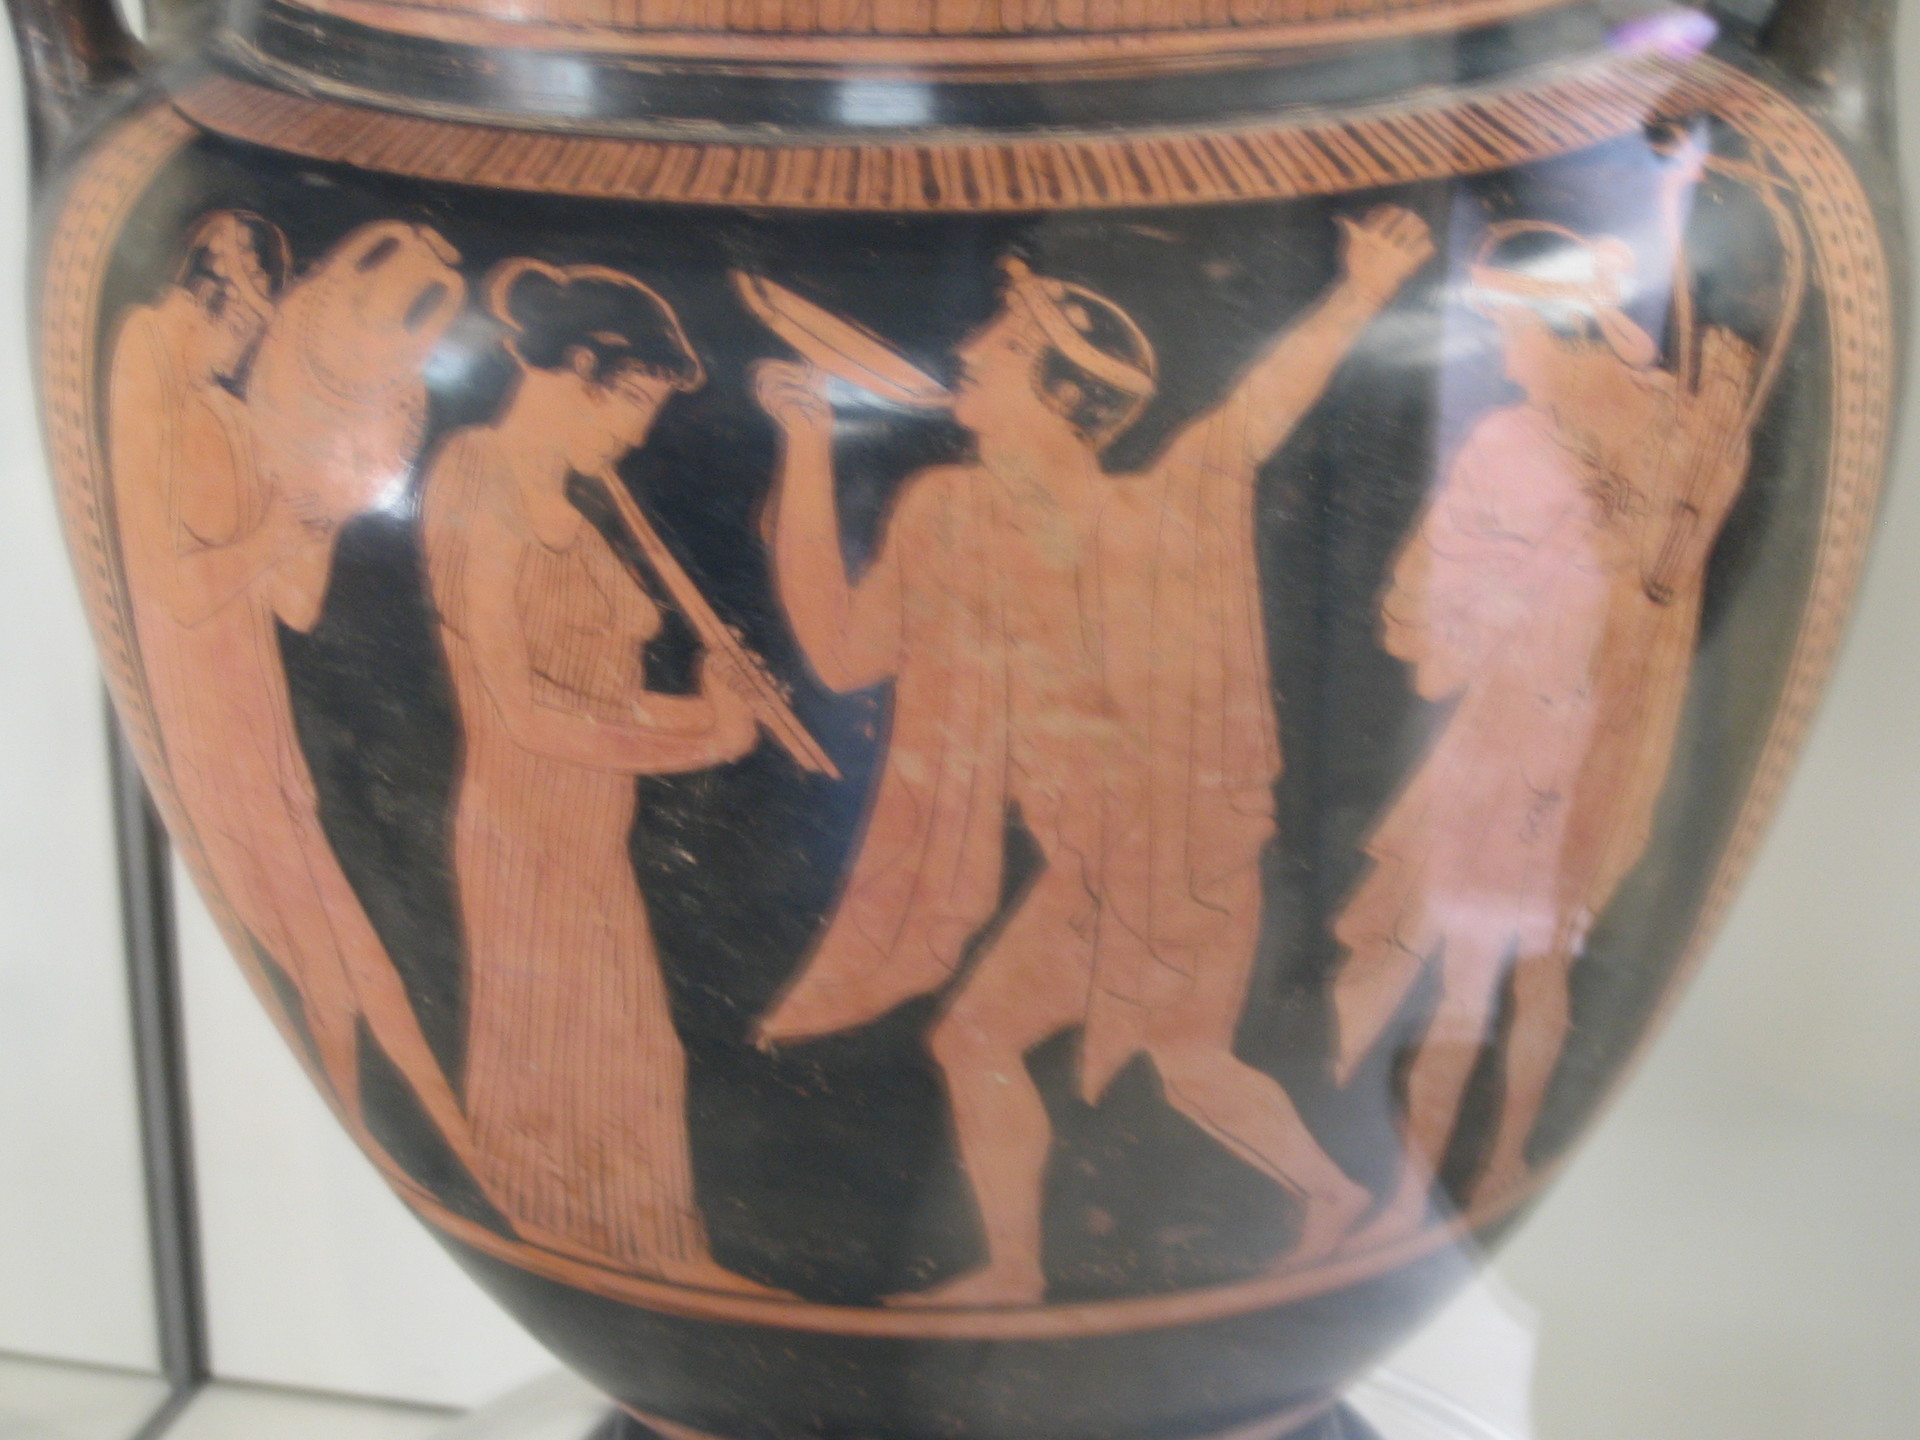 Palermo Archeological Museum: Wild Parties and Great Heroes